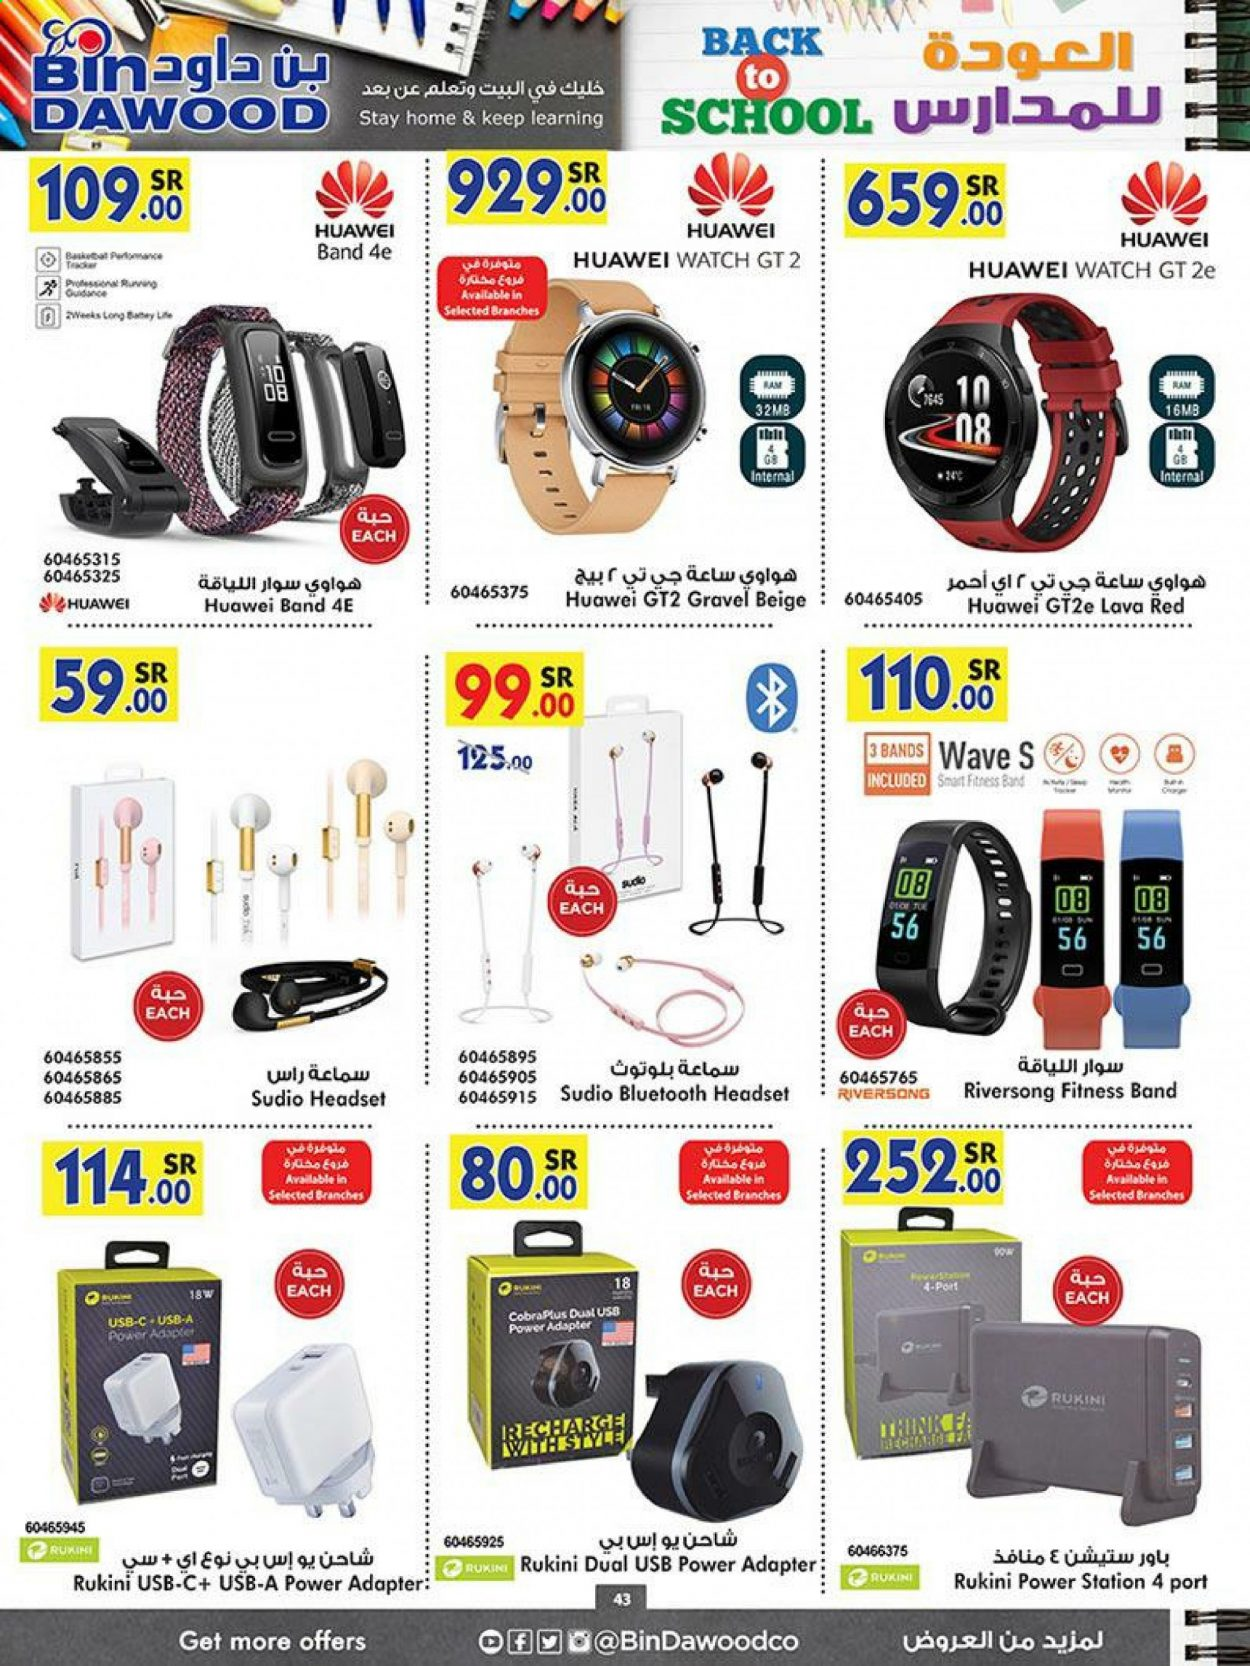 <retailer> - <MM.DD.YYYY - MM.DD.YYYY> - Sales products - ,<products from offers>. Page 43.